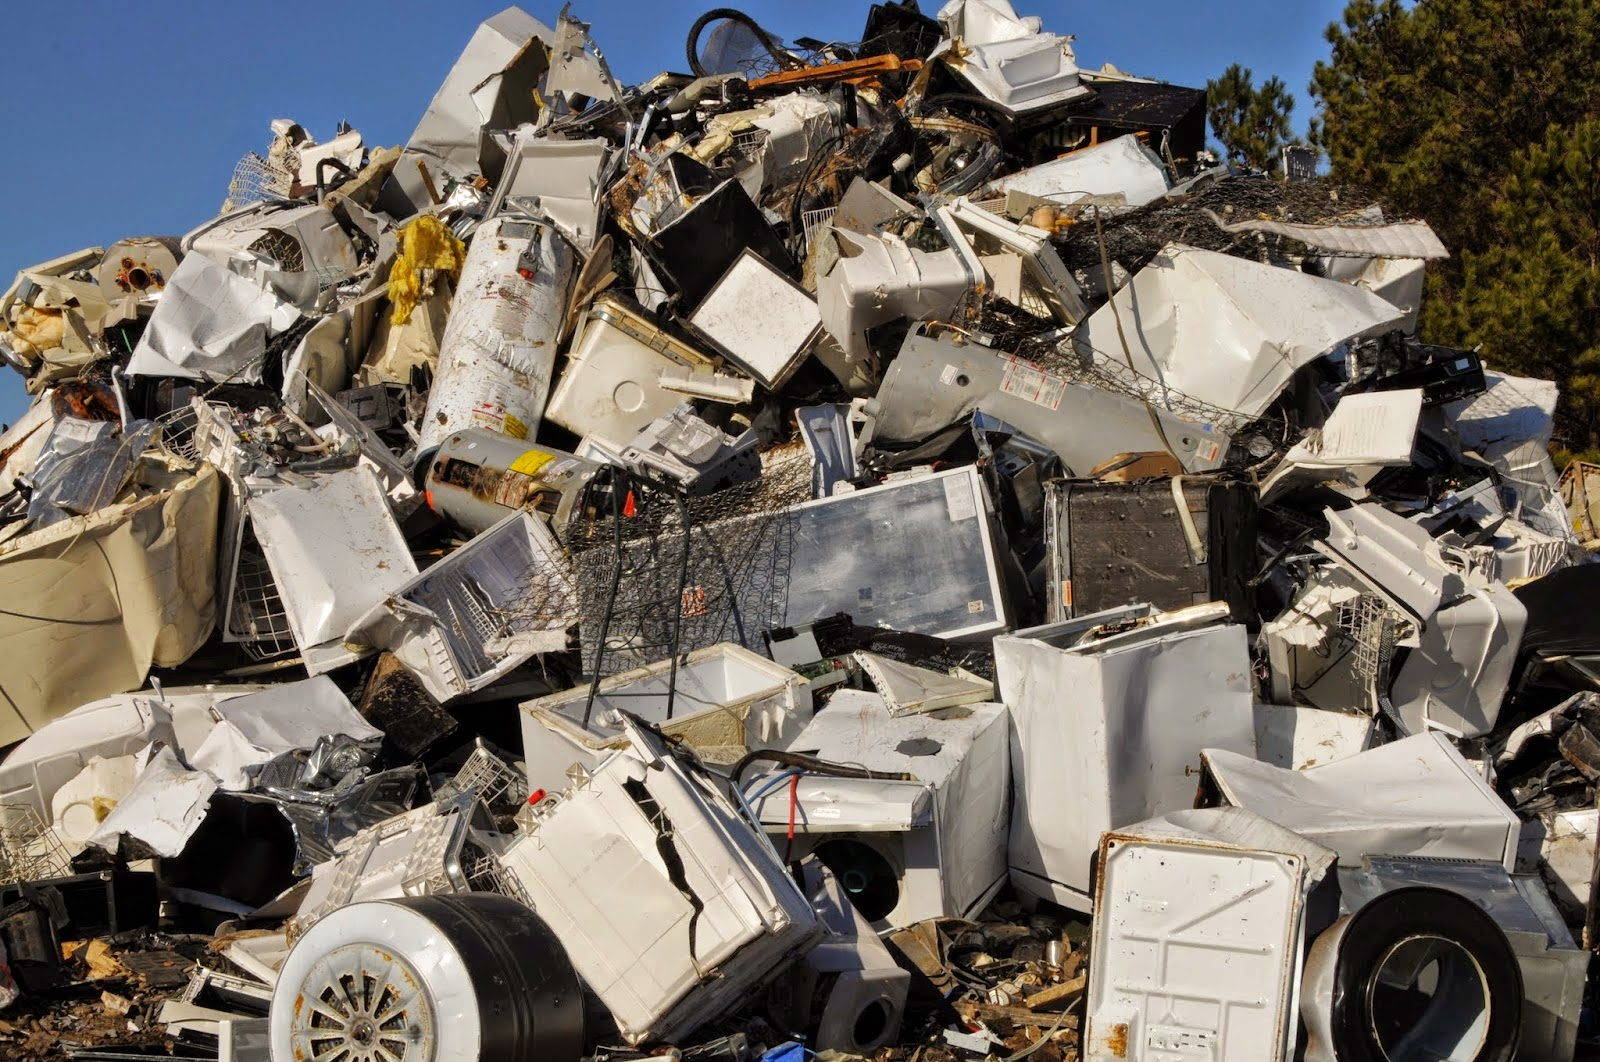 image of scrap yard of appliances sourced from BlogSpot.com